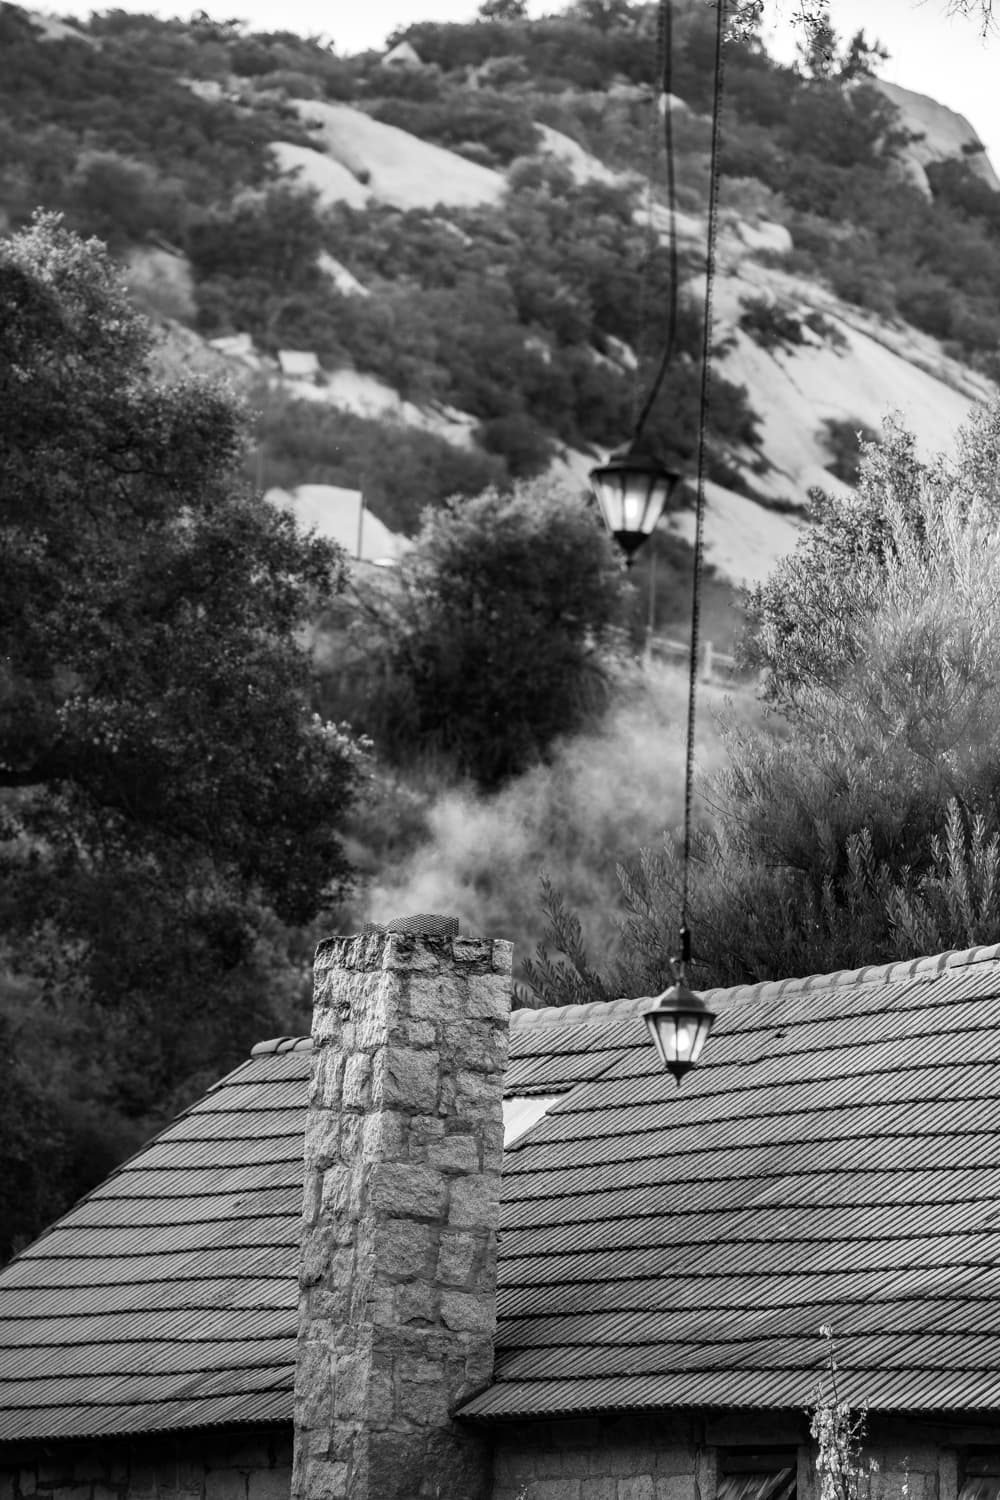 Chimney stack on The Stone House in Temecula, CA